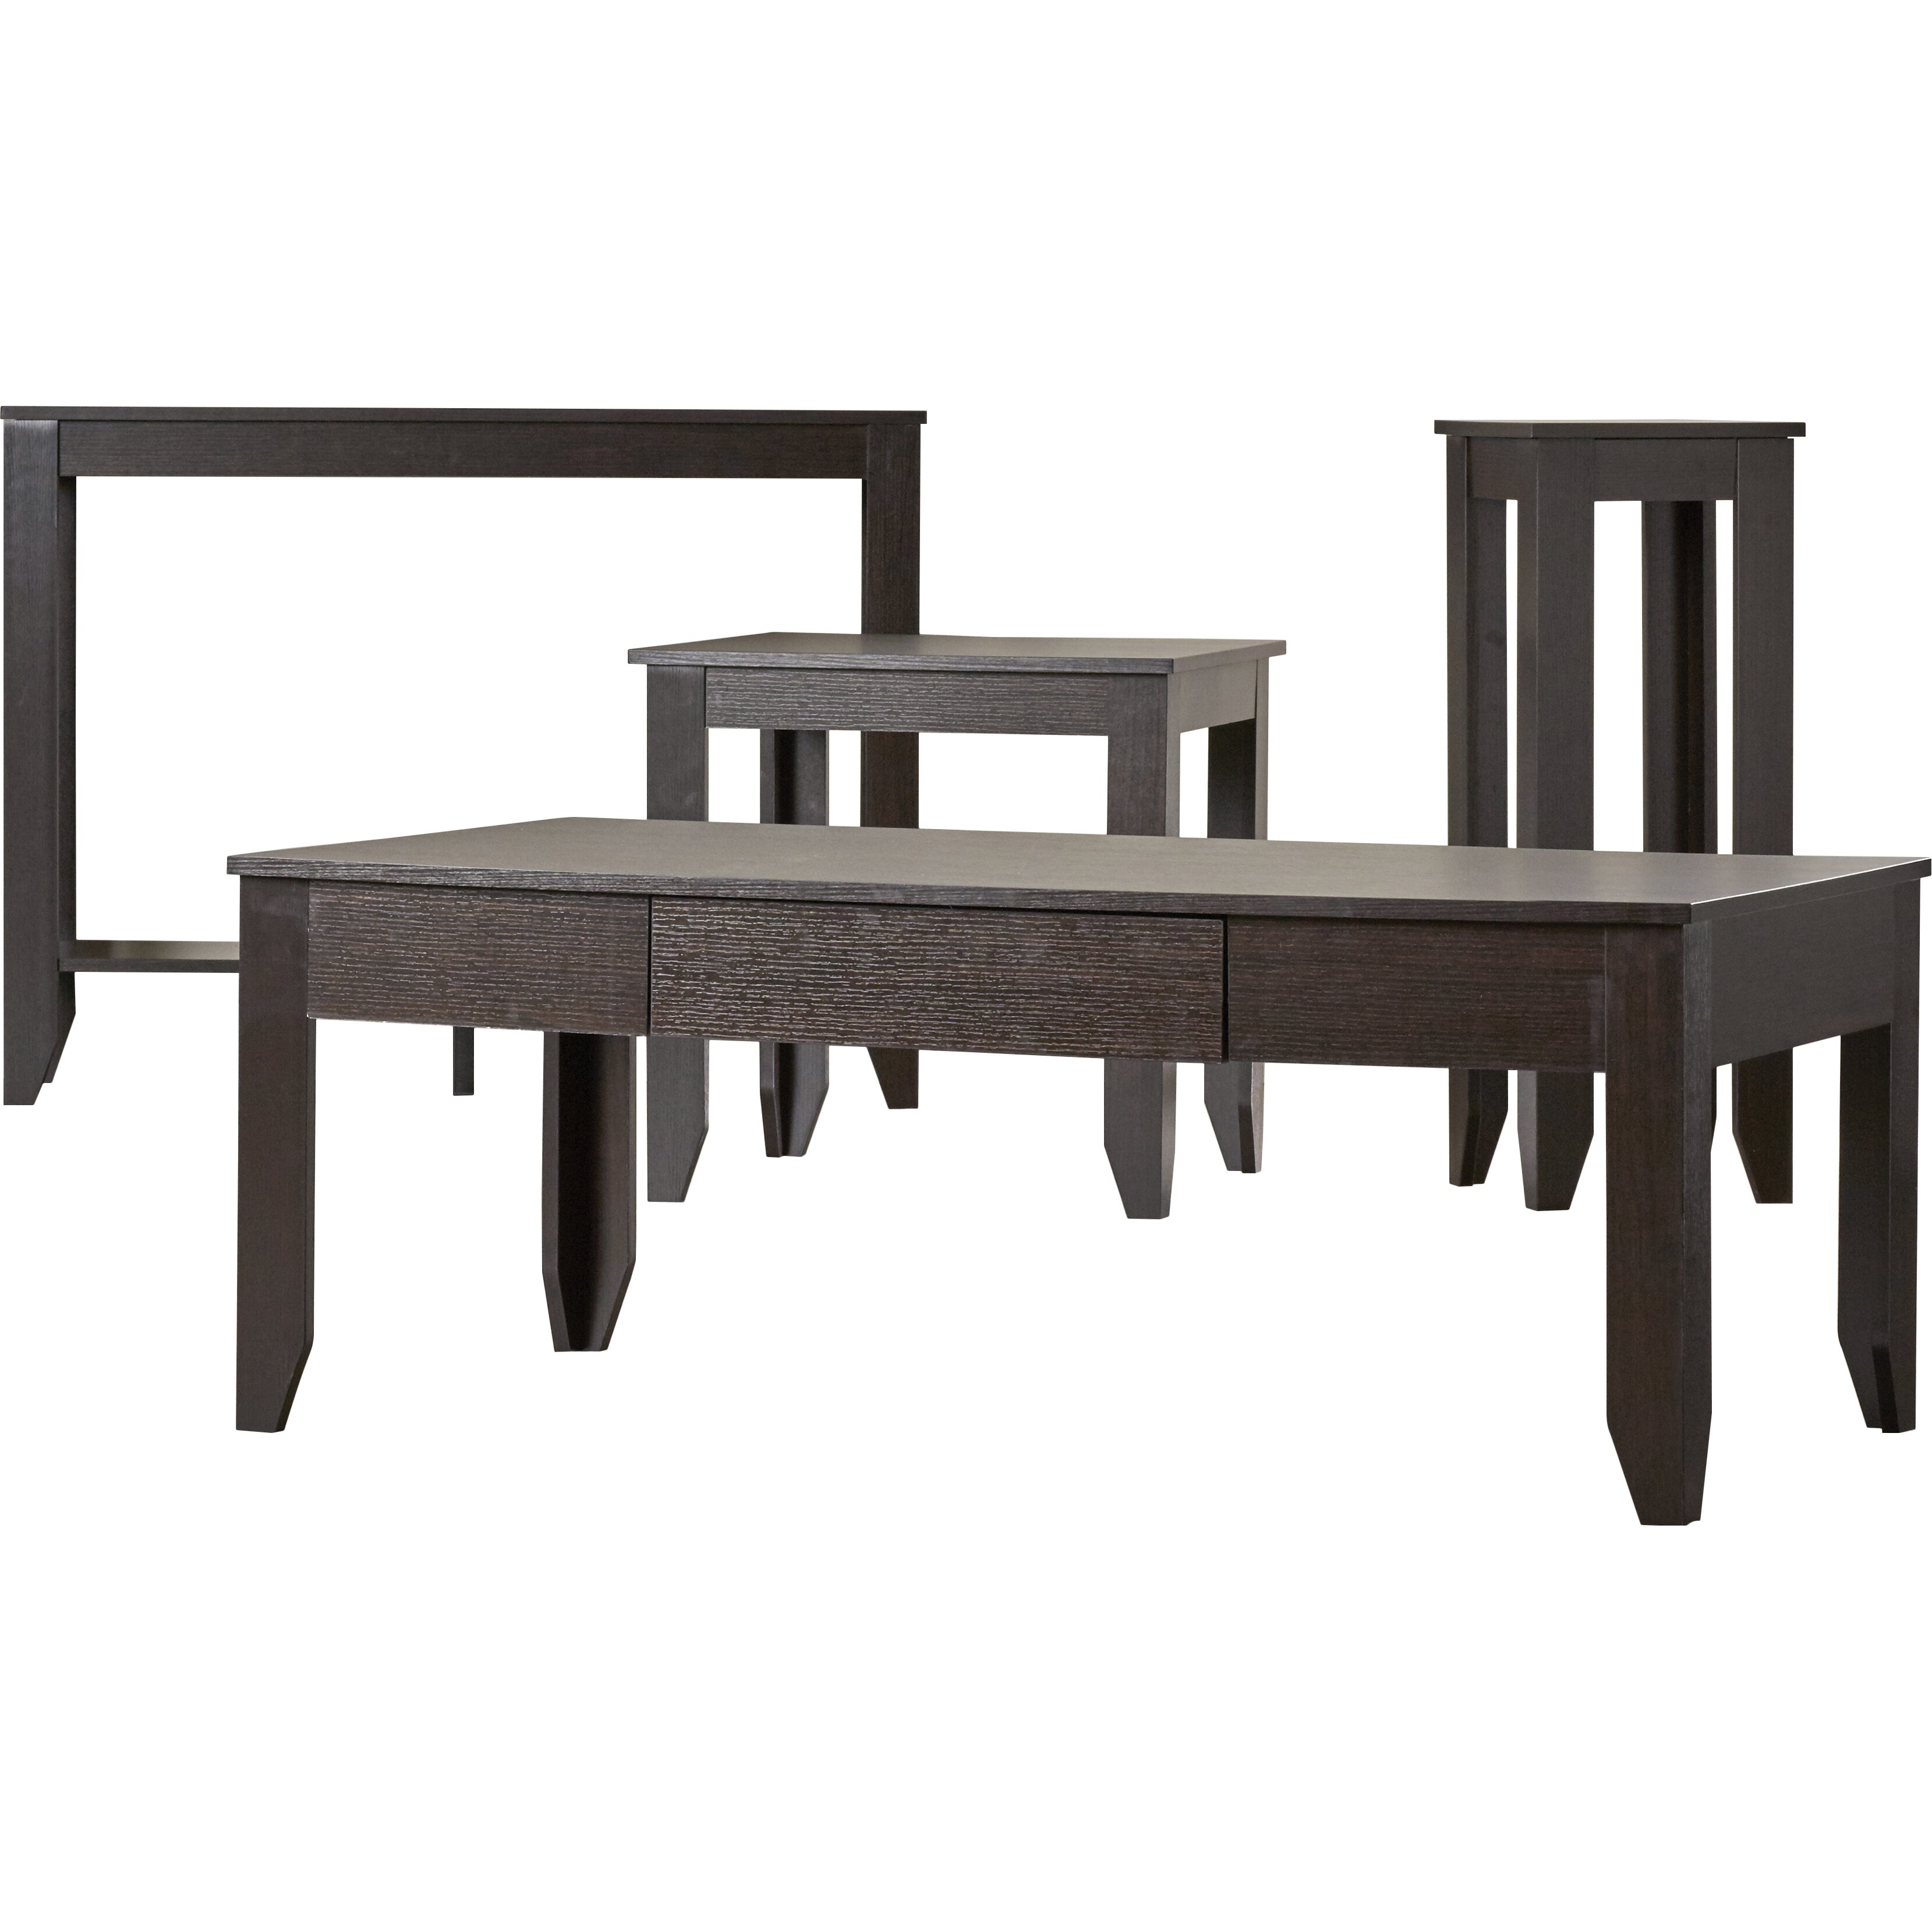 Zipcode Design Kaylee 4 Piece Coffee Table Set Reviews Wayfair